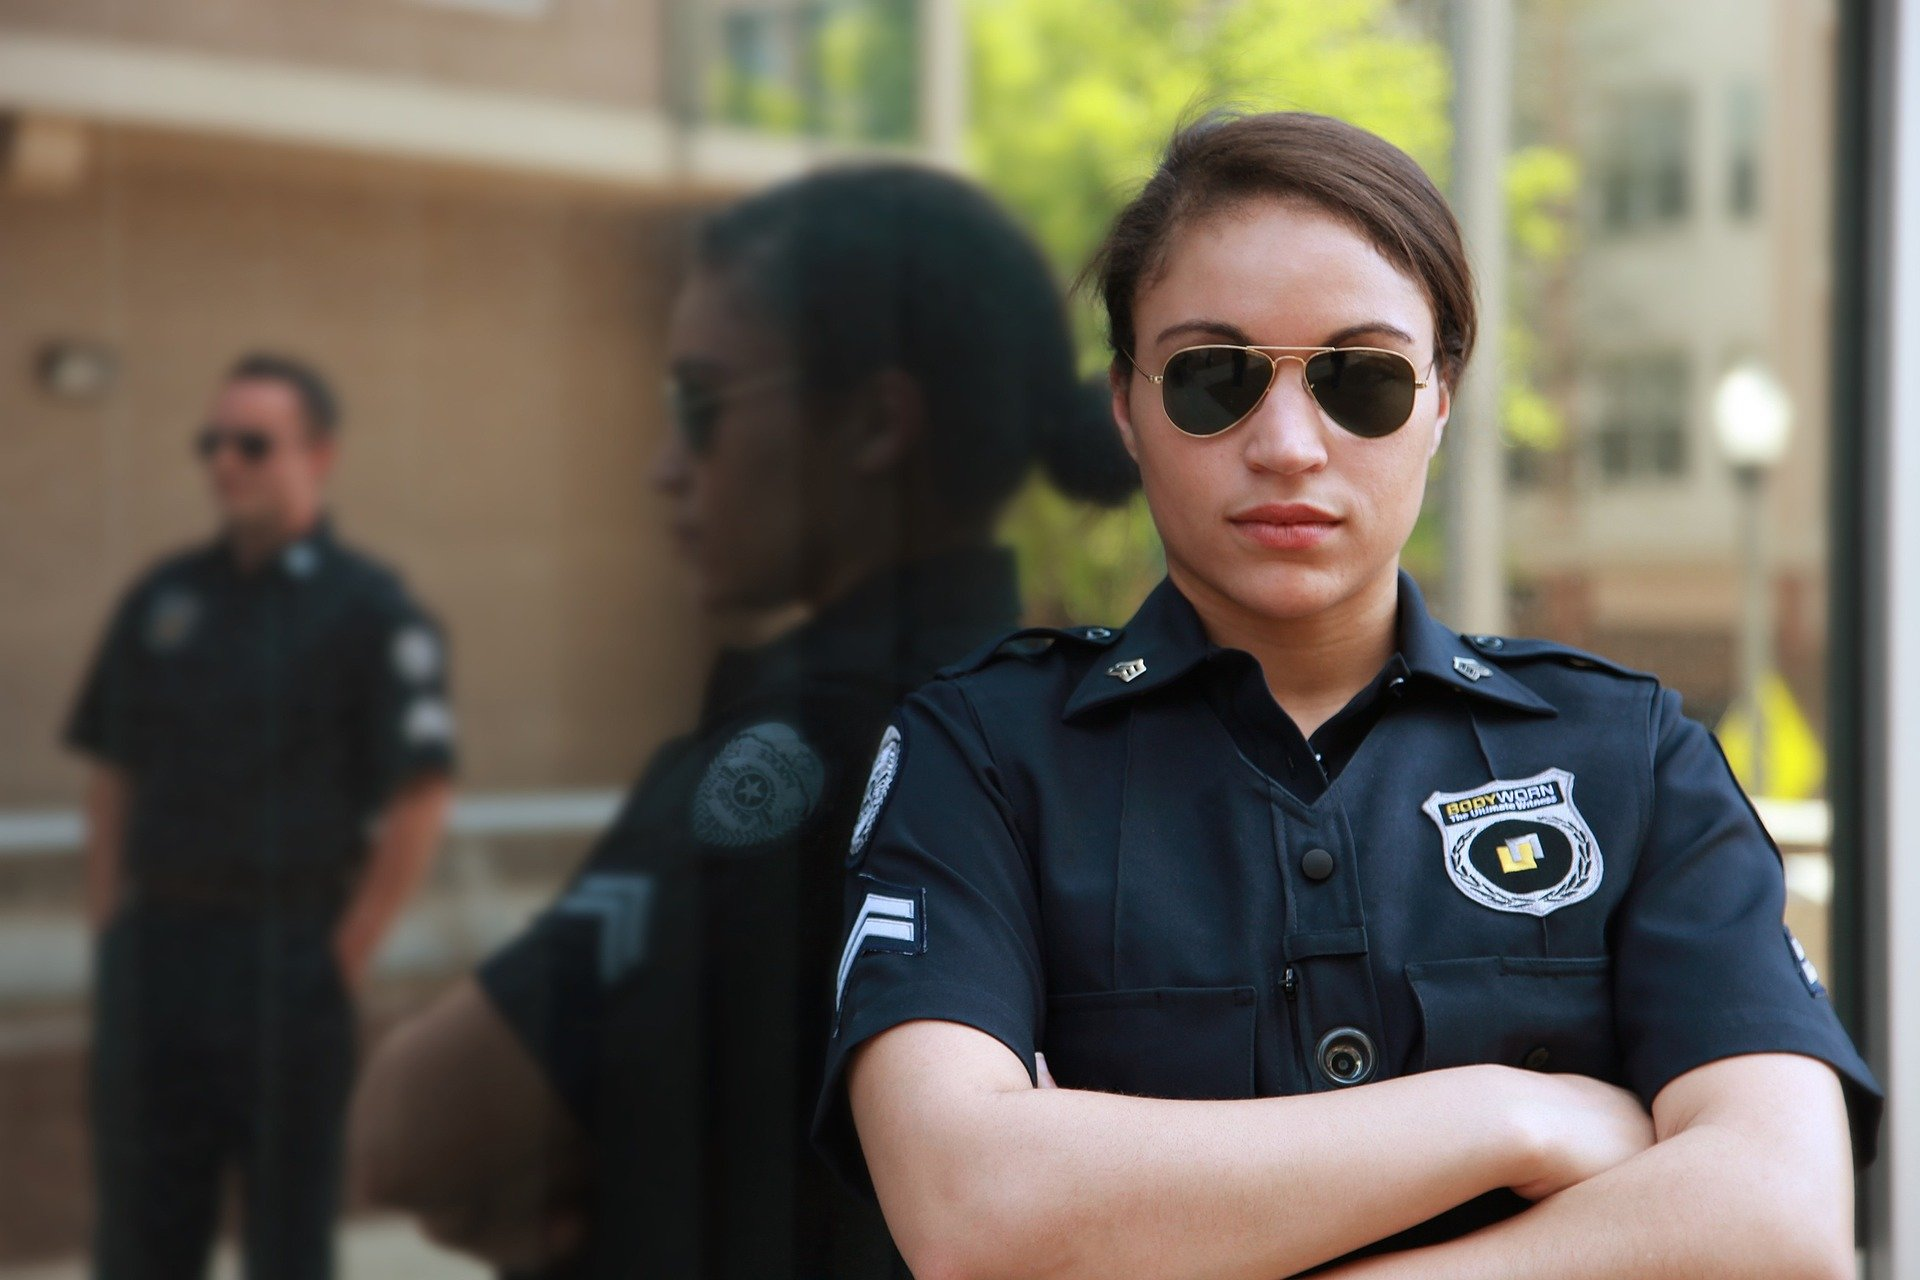 More Female Police Officers - The Best Fix For Police